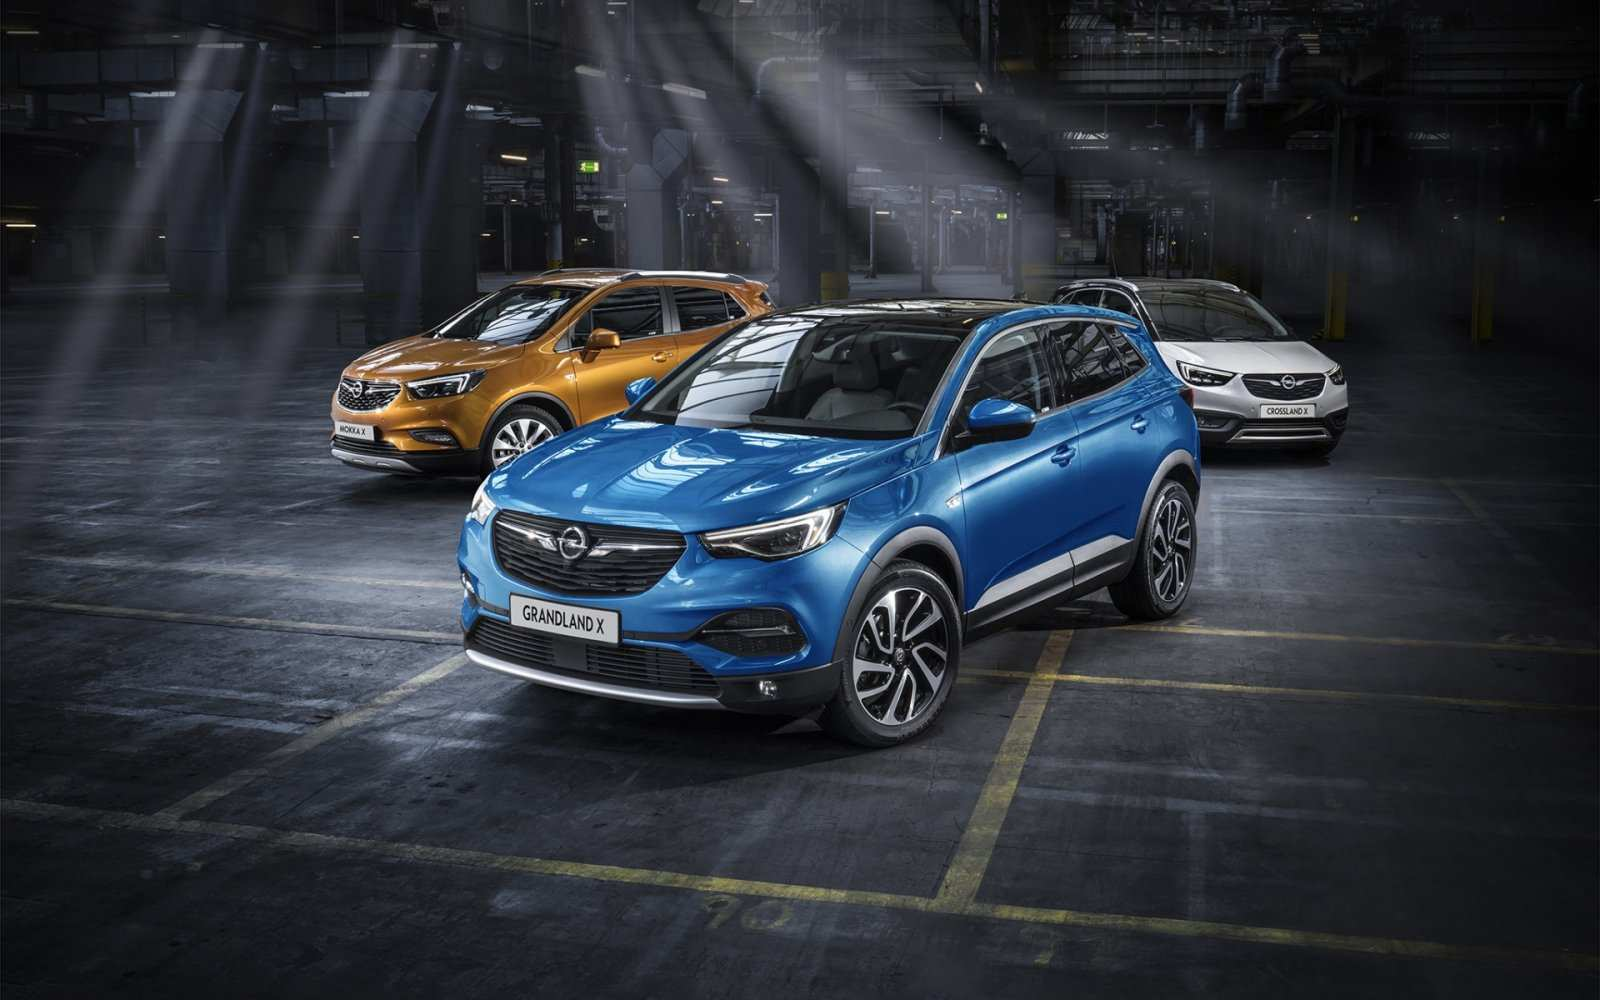 79 All New Nouvelle Opel Karl 2020 Wallpaper